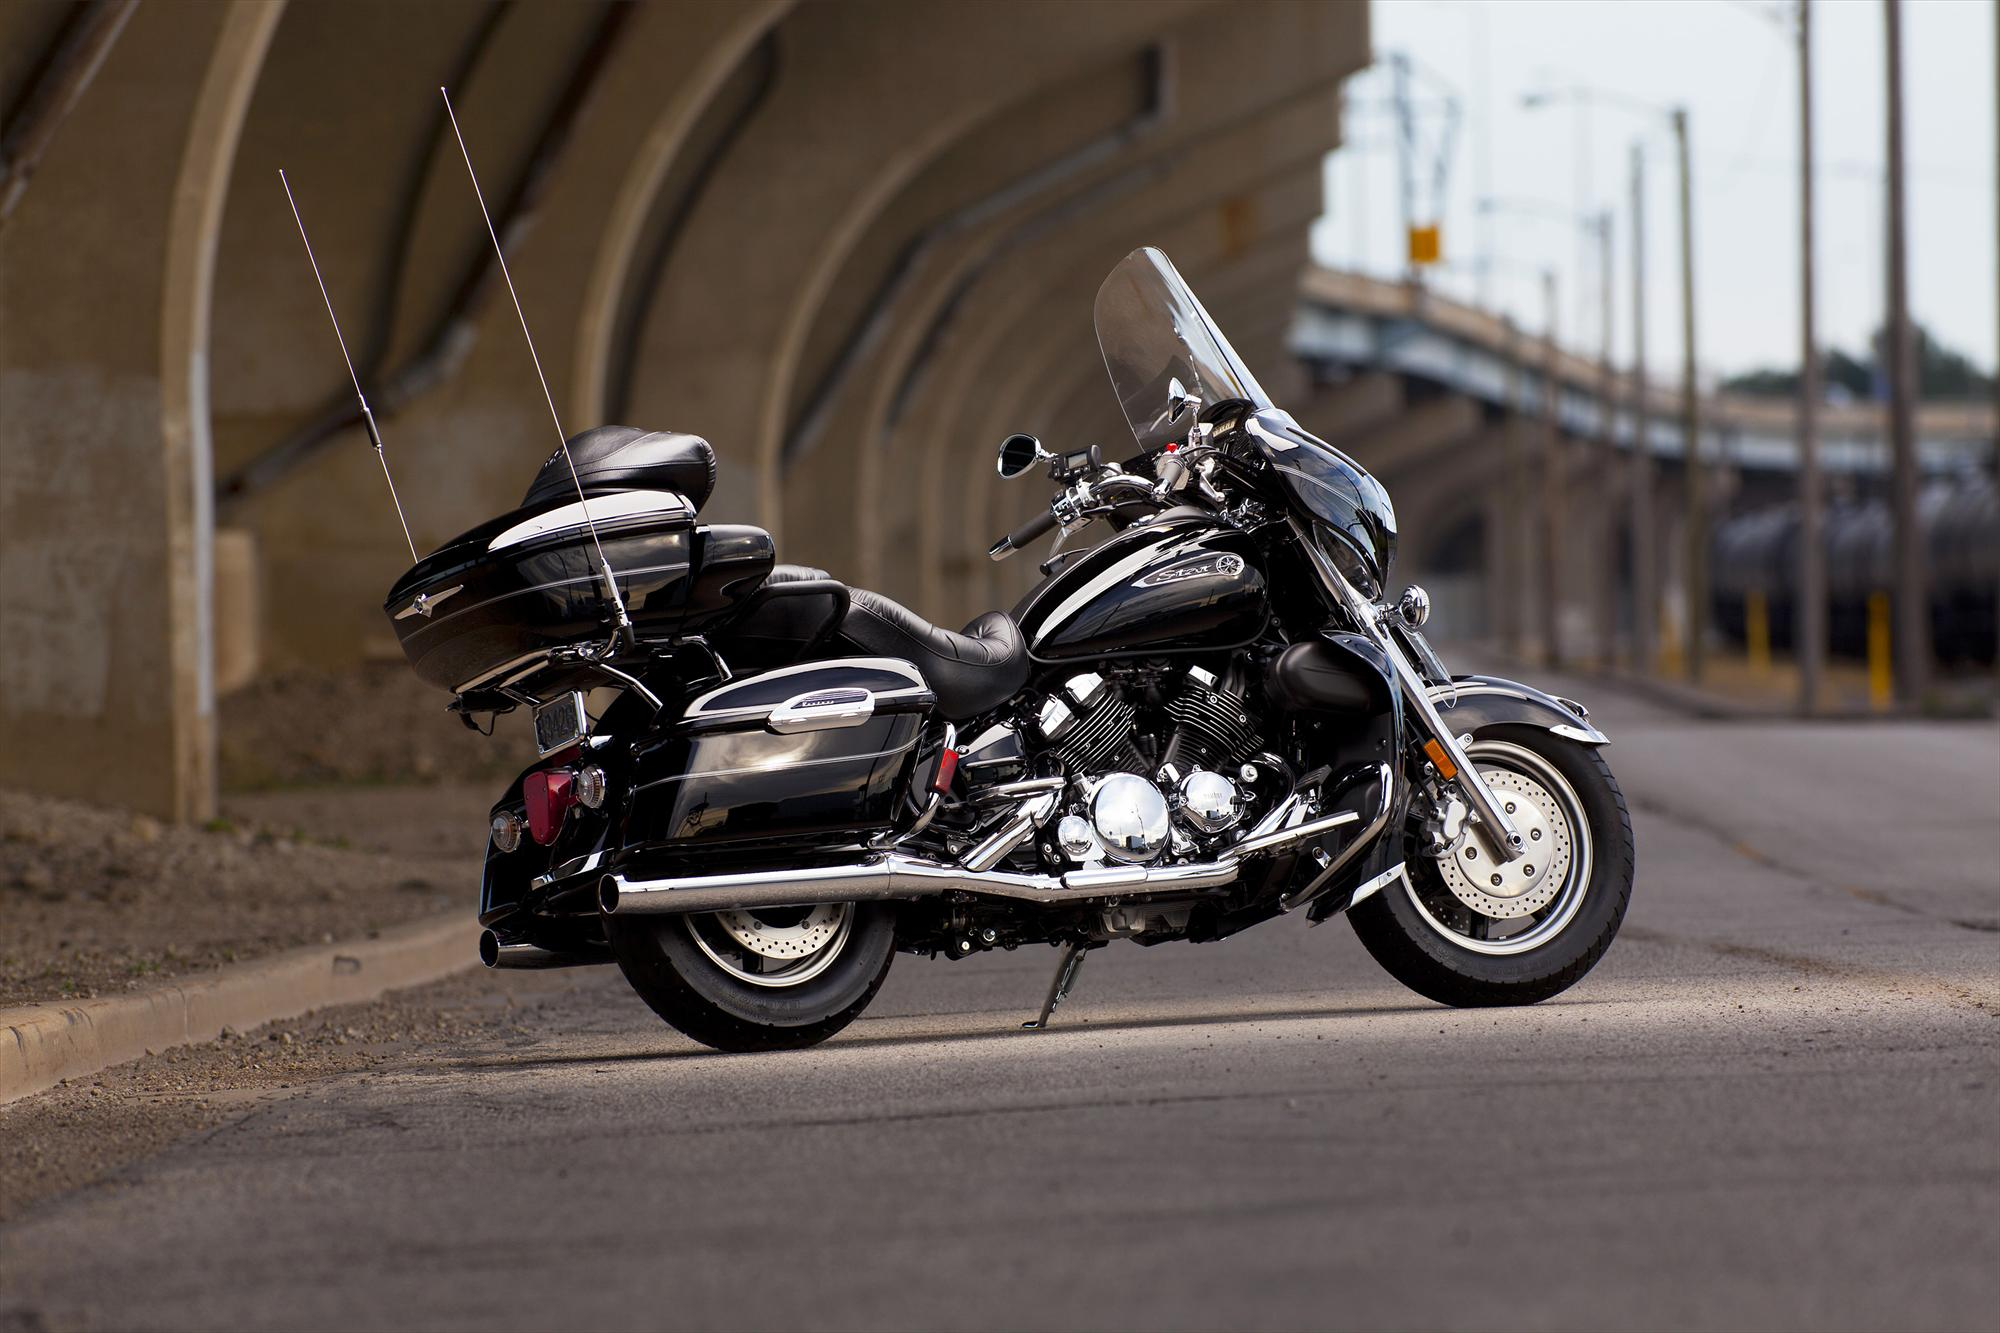 Yamaha Royal Star Venture S 2014 #14